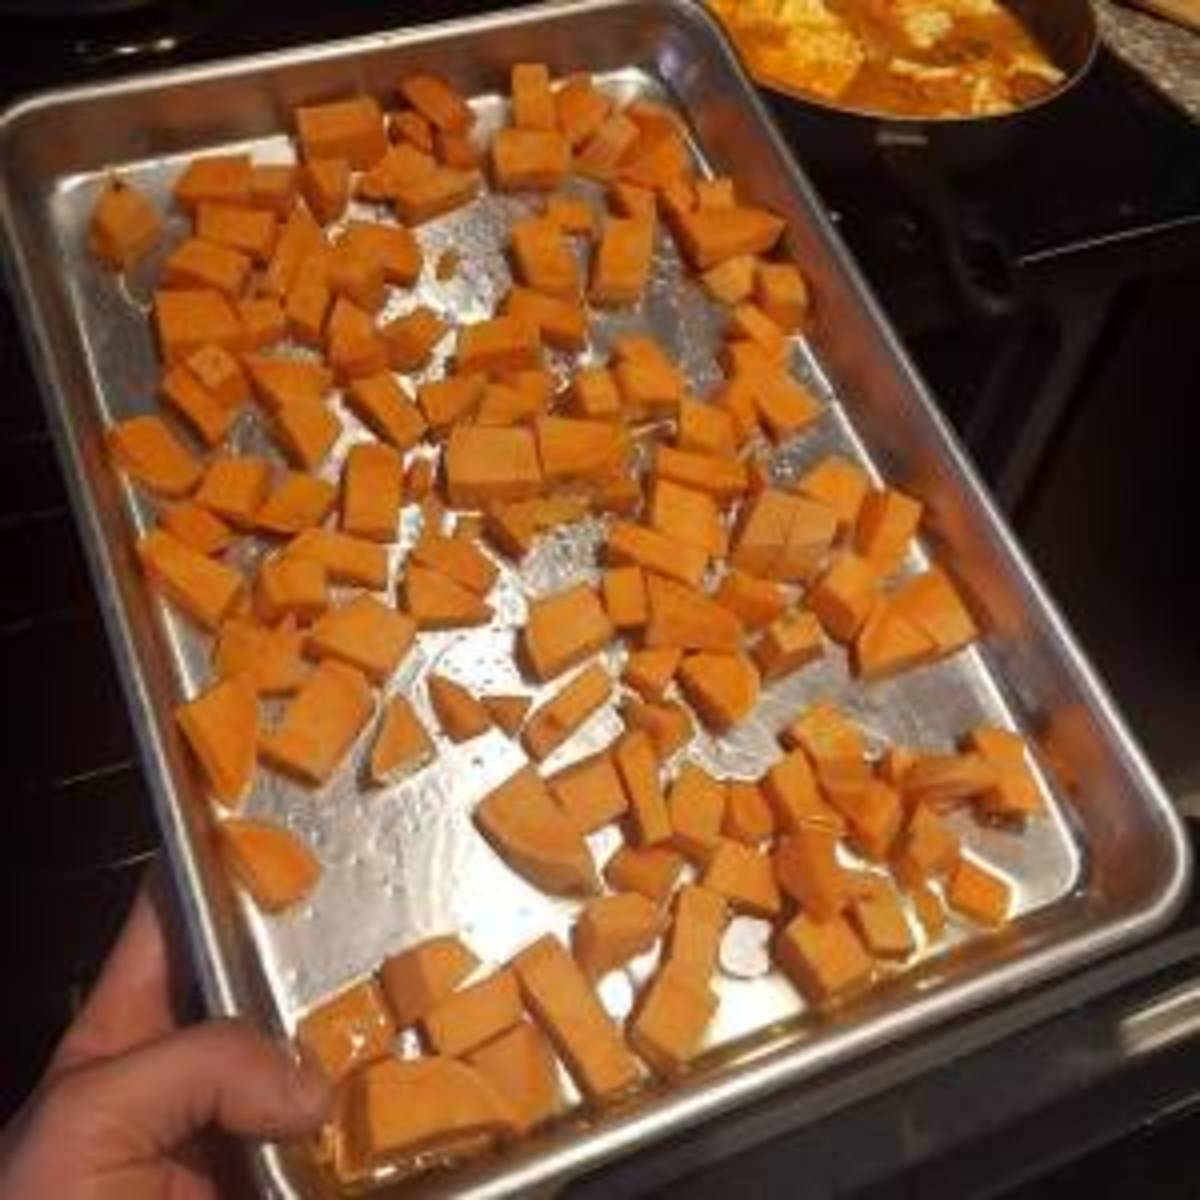 Bake the sweet potatoes in the oven until they're soft.